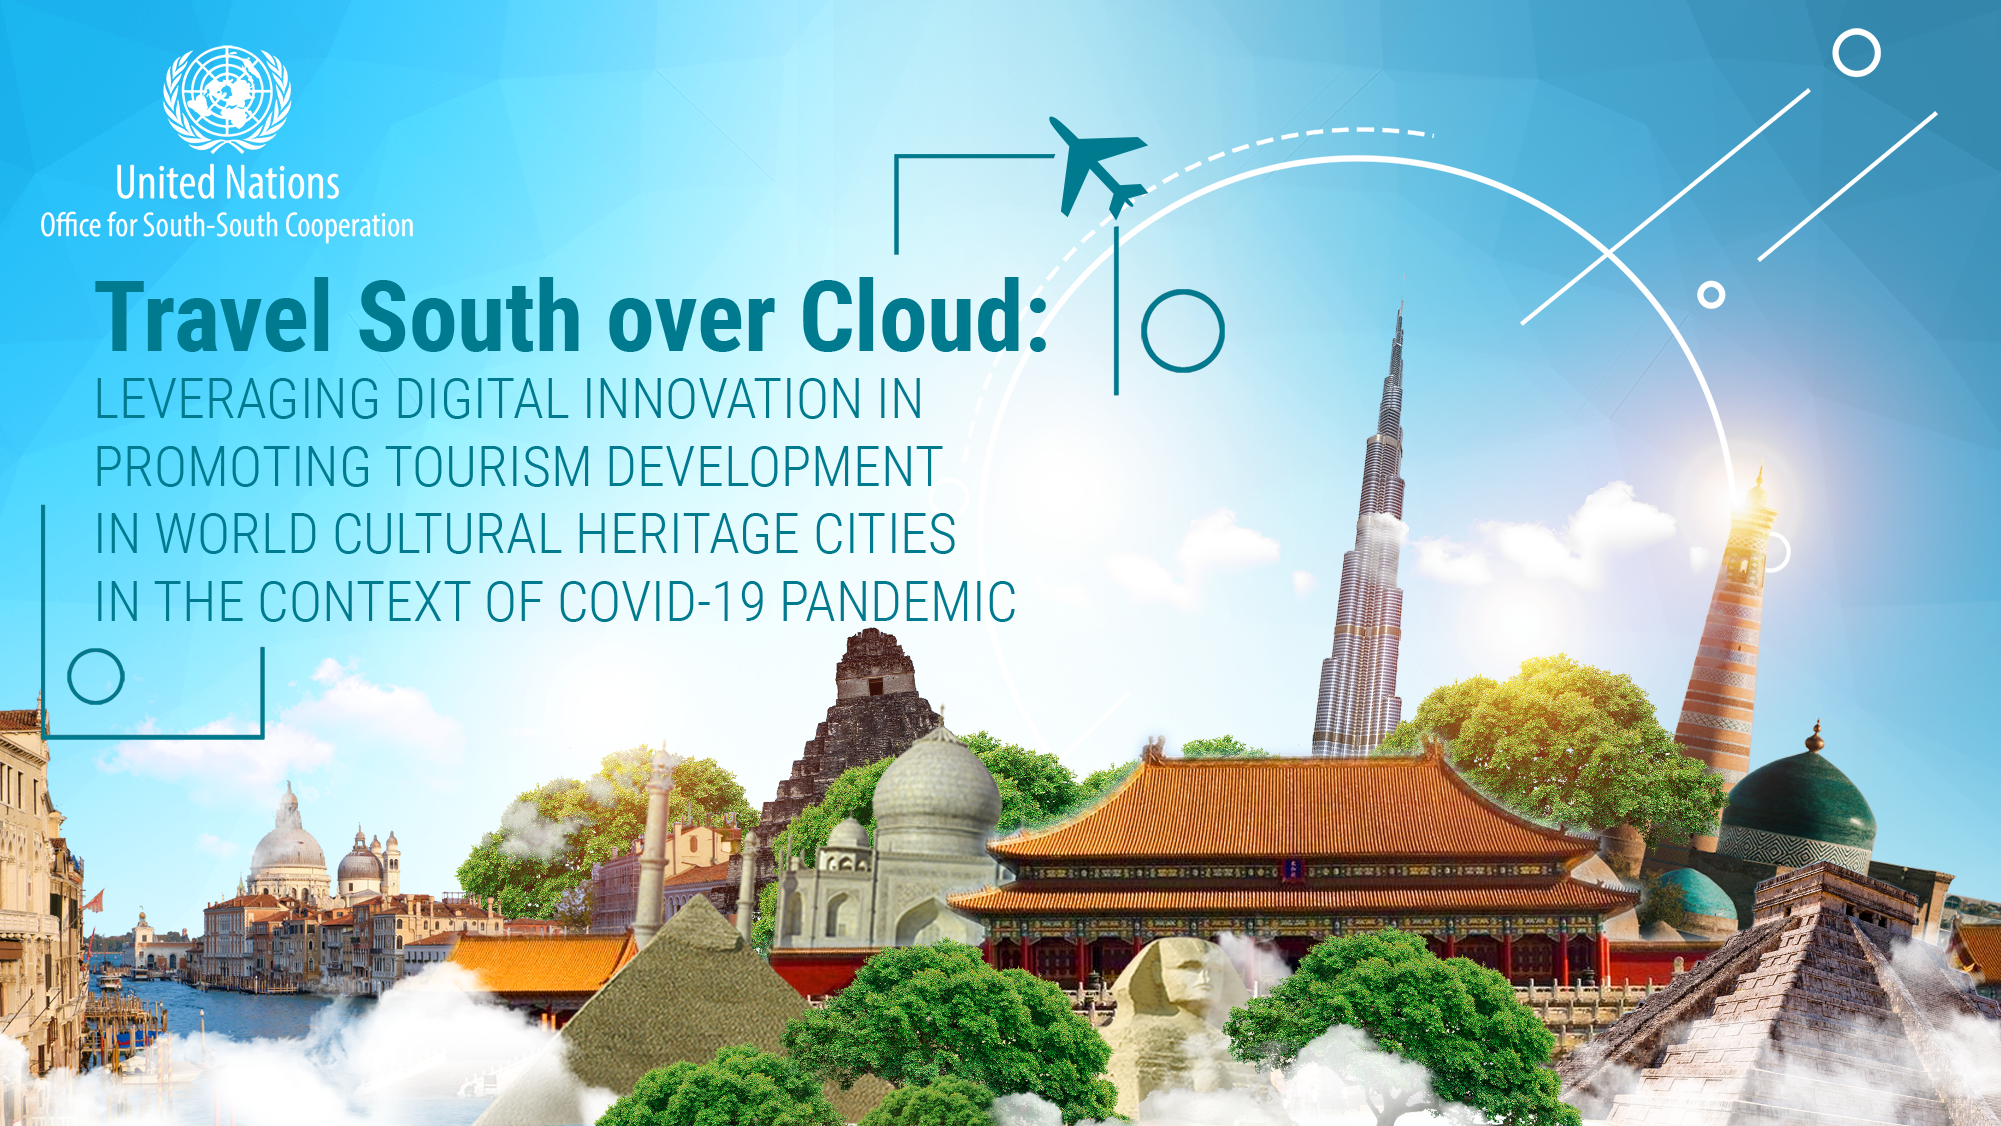 Leveraging Digital Innovation in Promoting Tourism Development in World Heritage Cities